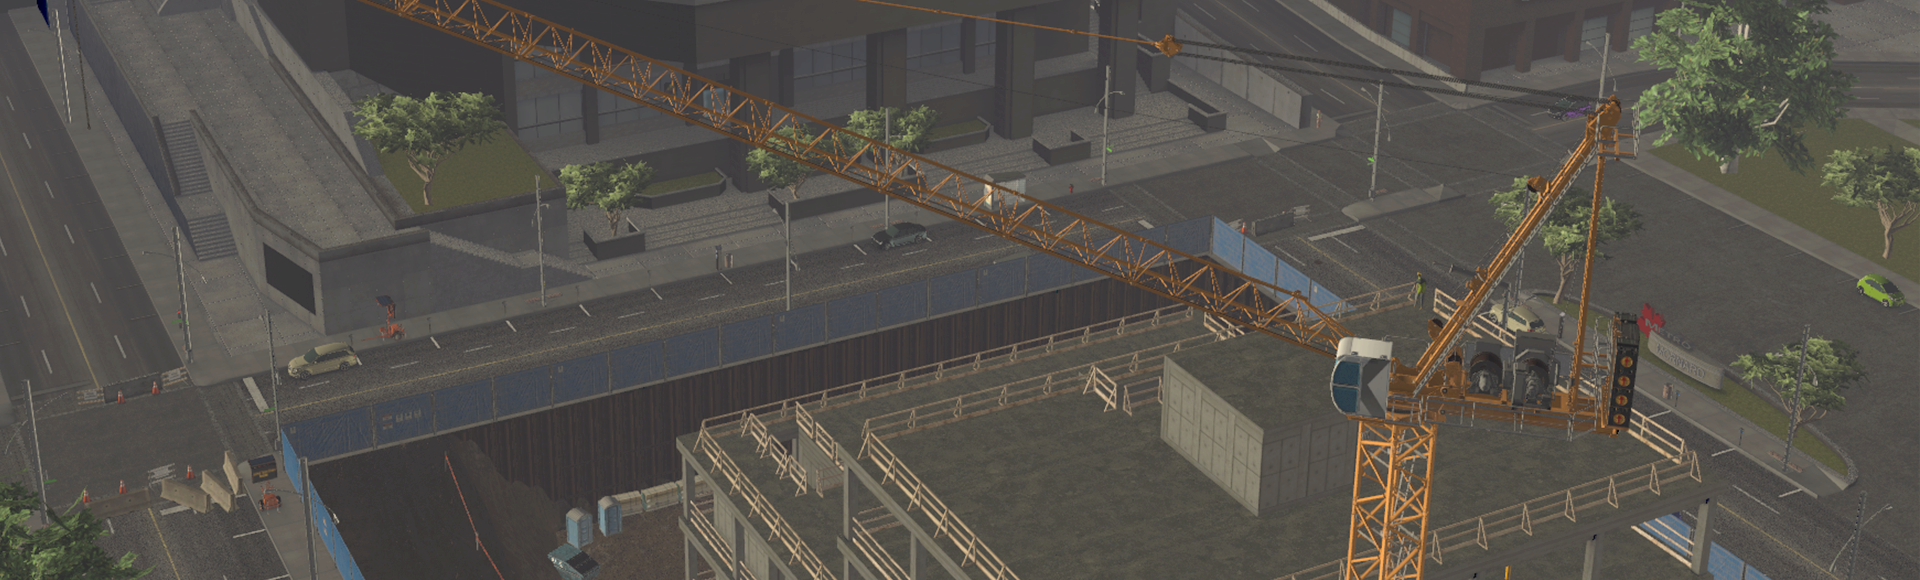 CM labs – Luffing Tower Crane Simulator